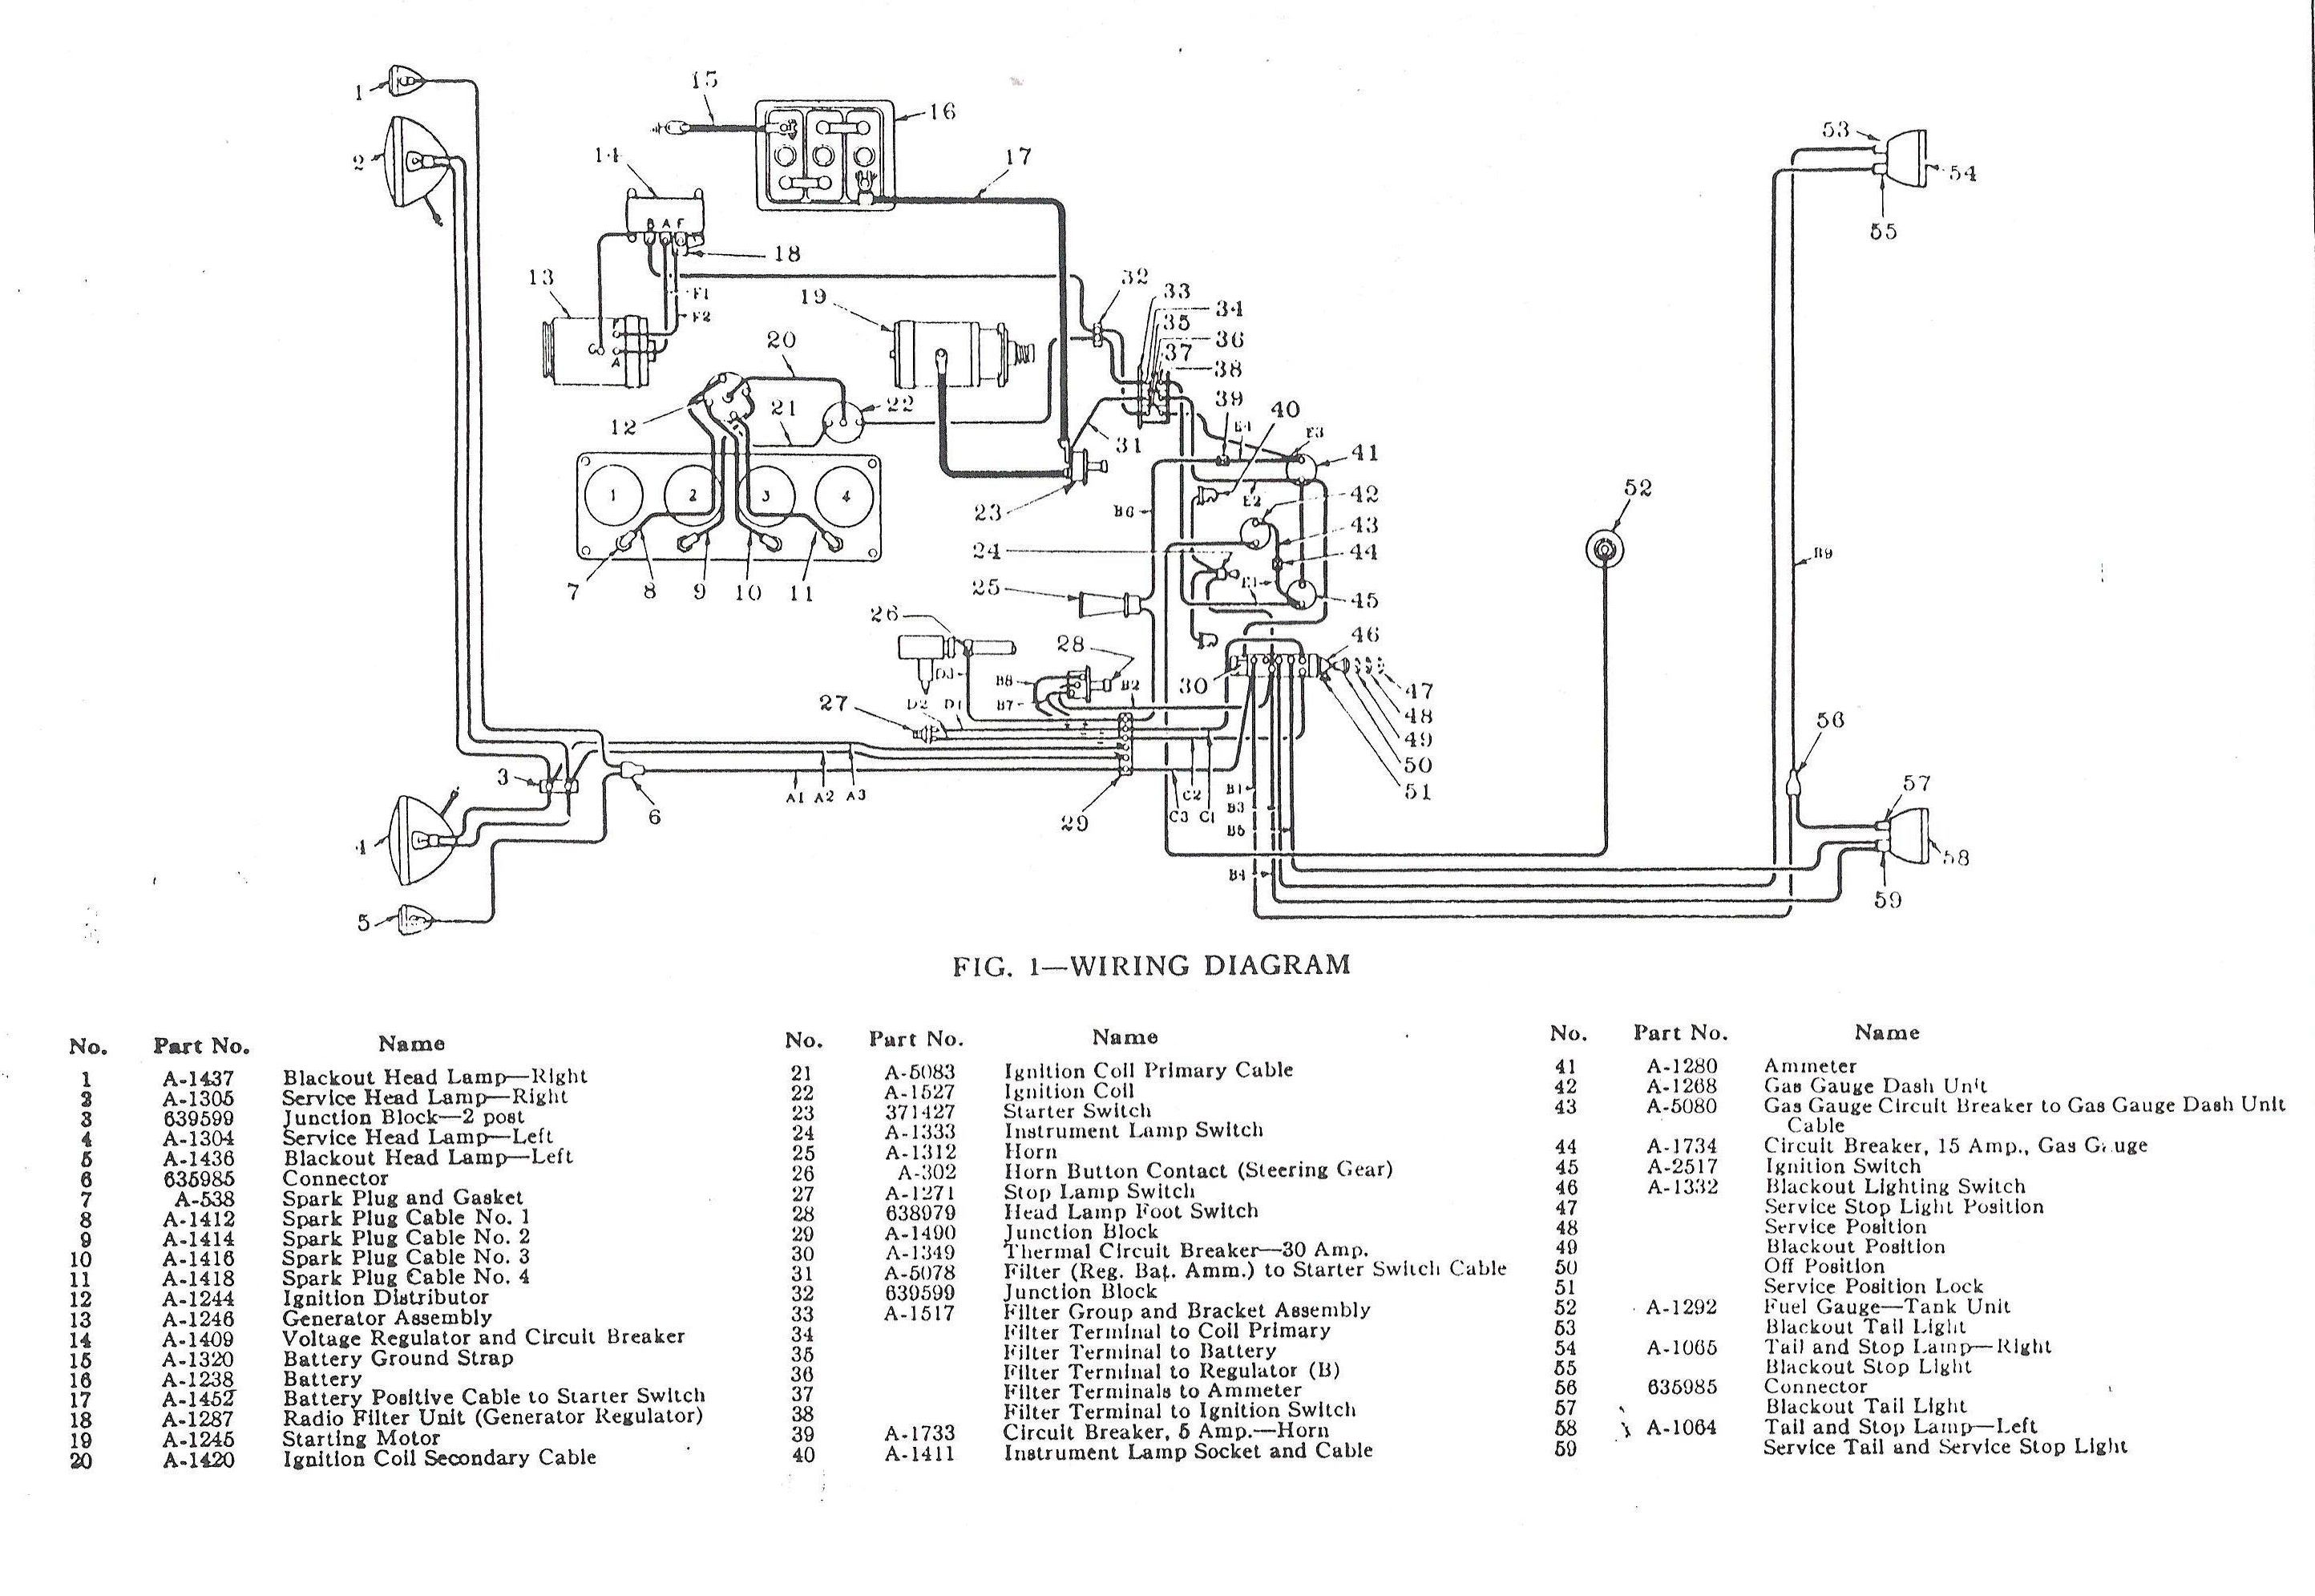 1963 willys truck wiring diagrams explained wiring diagram 1963 Chevy Truck Turn Signal Wiring Diagram 1963 willys jeep wiring 9 11 asyaunited de \\u2022 jeep electrical wiring schematic 1963 willys truck wiring diagrams